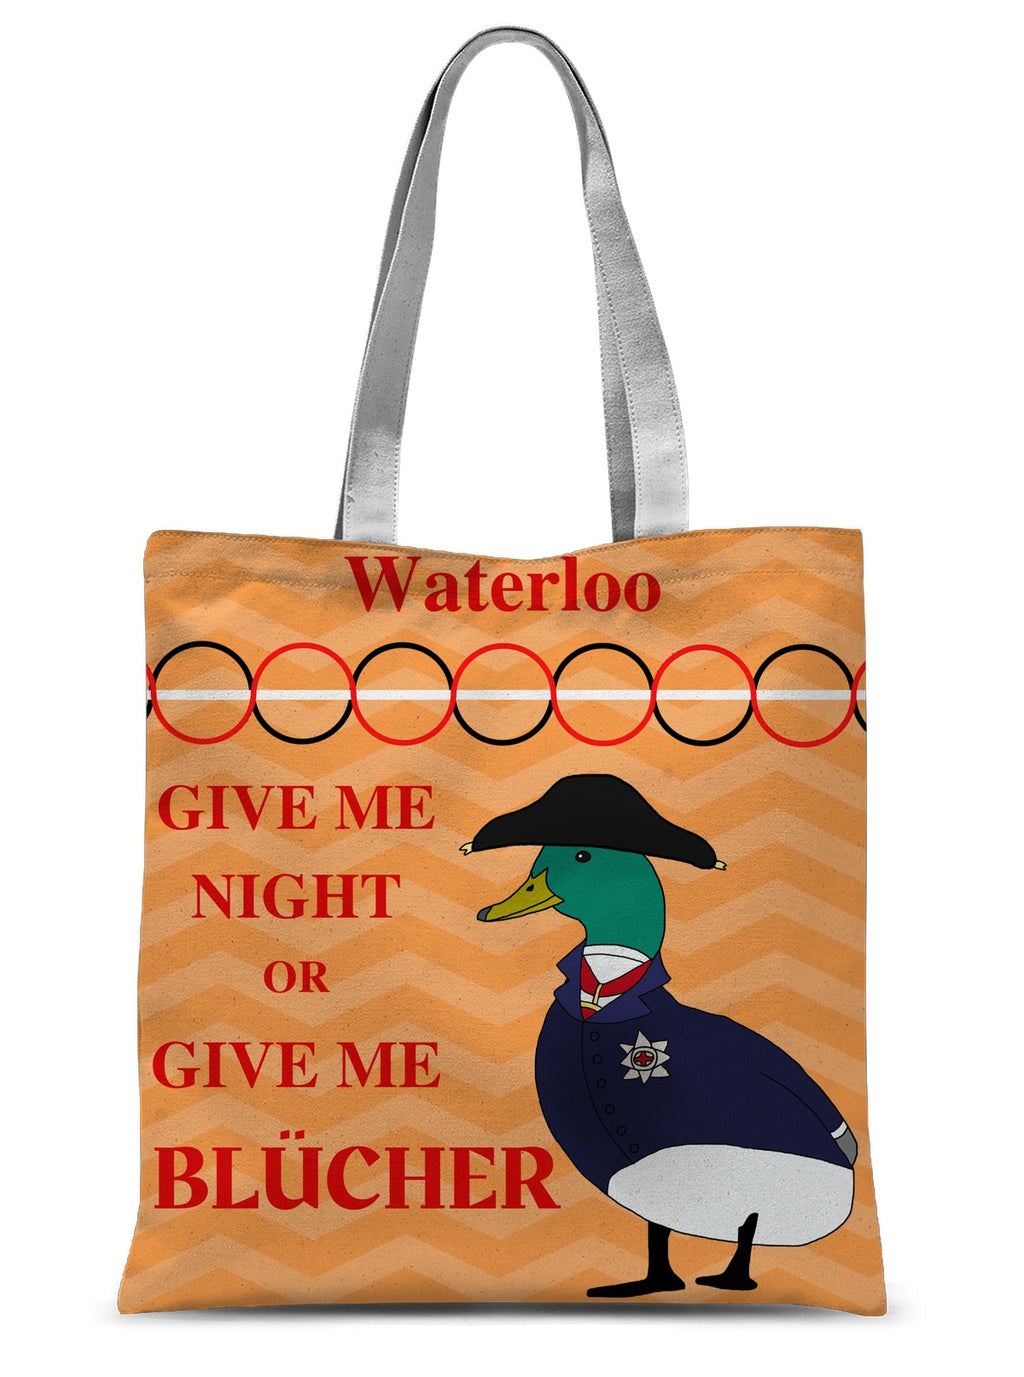 Duck of Wellington and Elephant Blücher Sublimation Tote Bag - Napoleonic Impressions